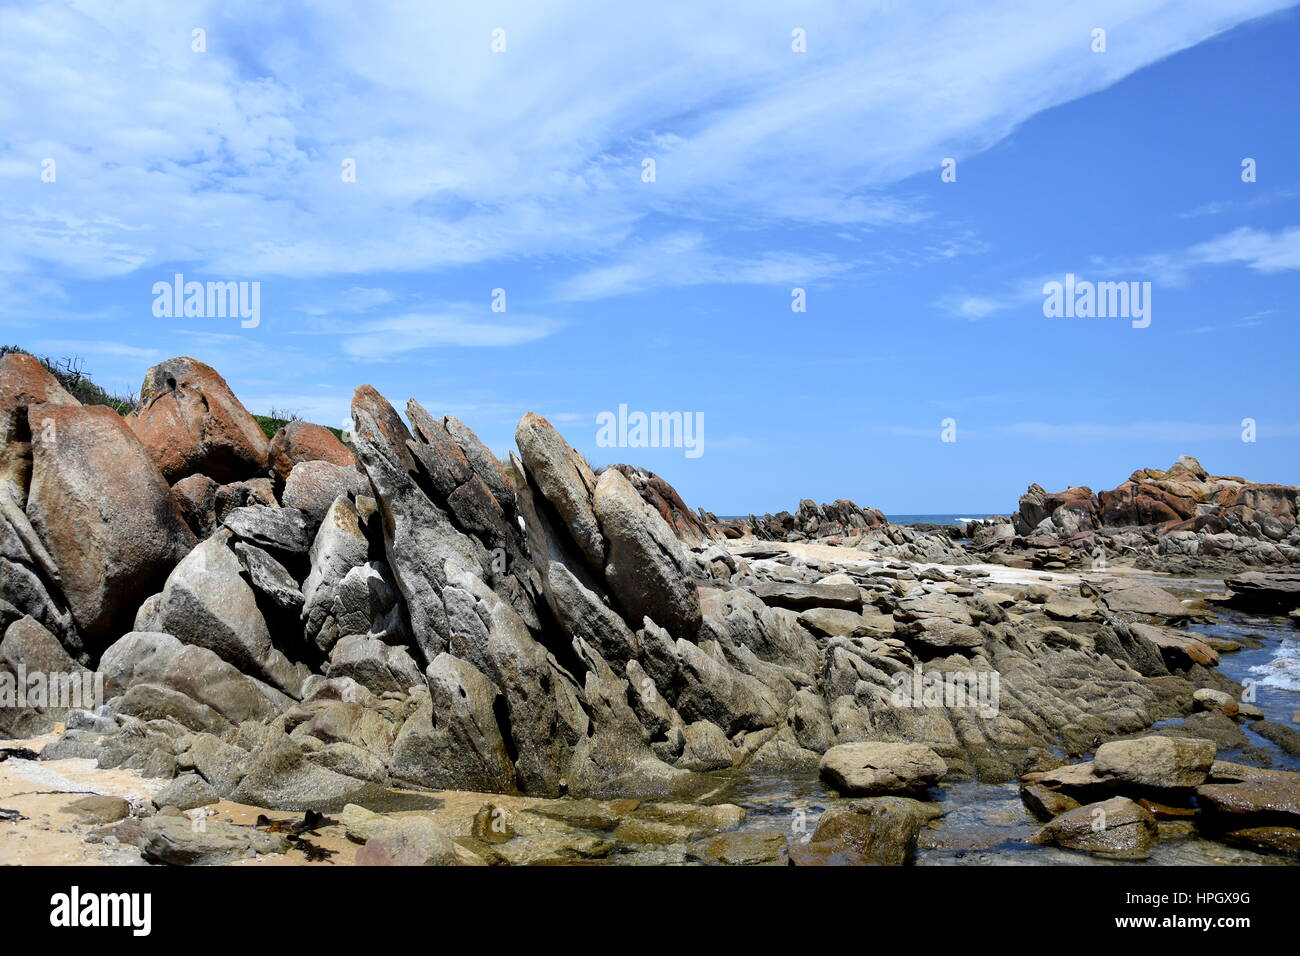 Cape Conran Stock Photos & Cape Conran Stock Images - Alamy